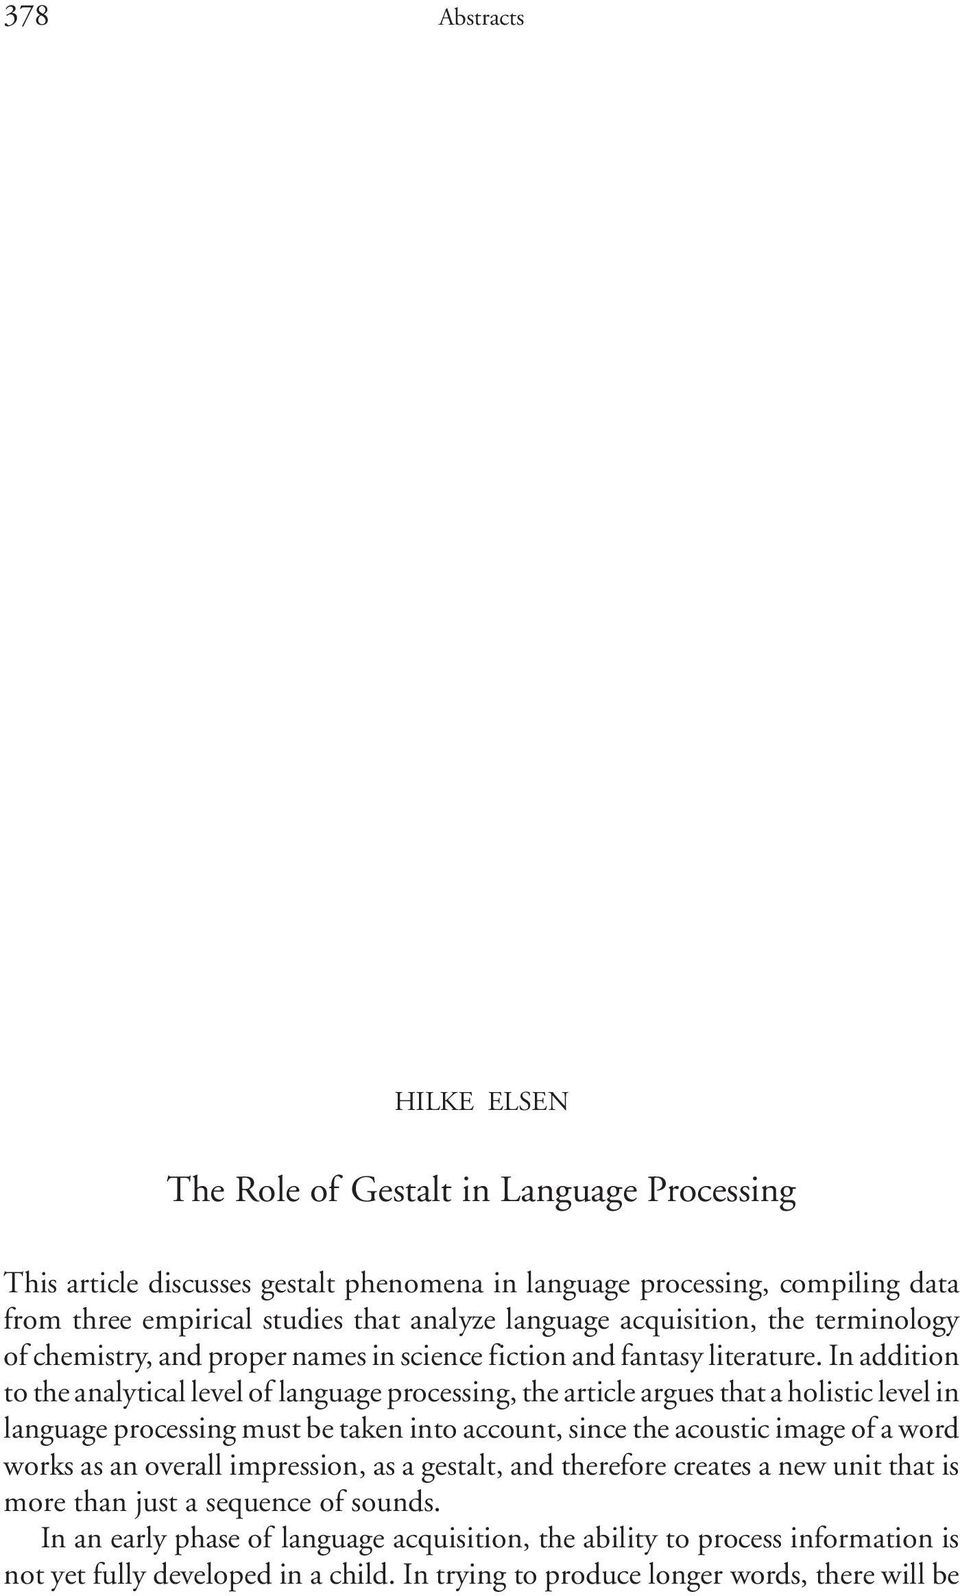 In addition to the analytical level of language processing, the article argues that a holistic level in language processing must be taken into account, since the acoustic image of a word works